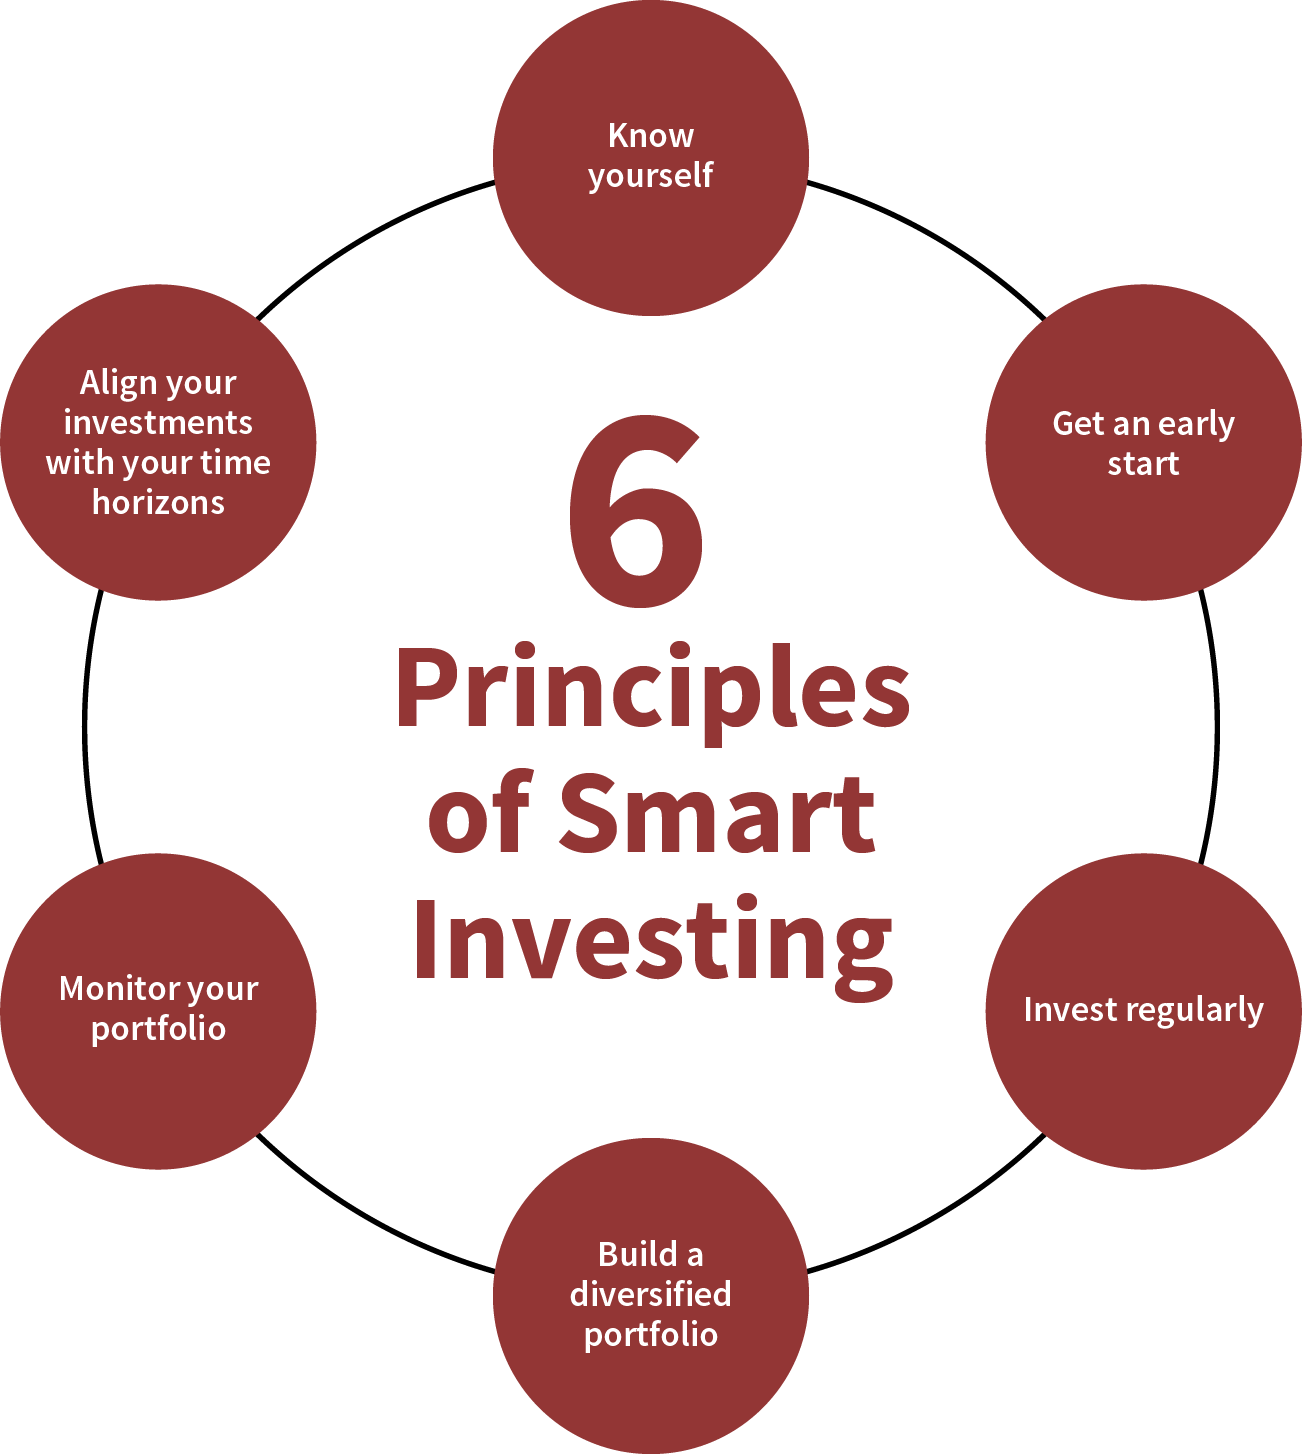 6 Principles of Smart Investing